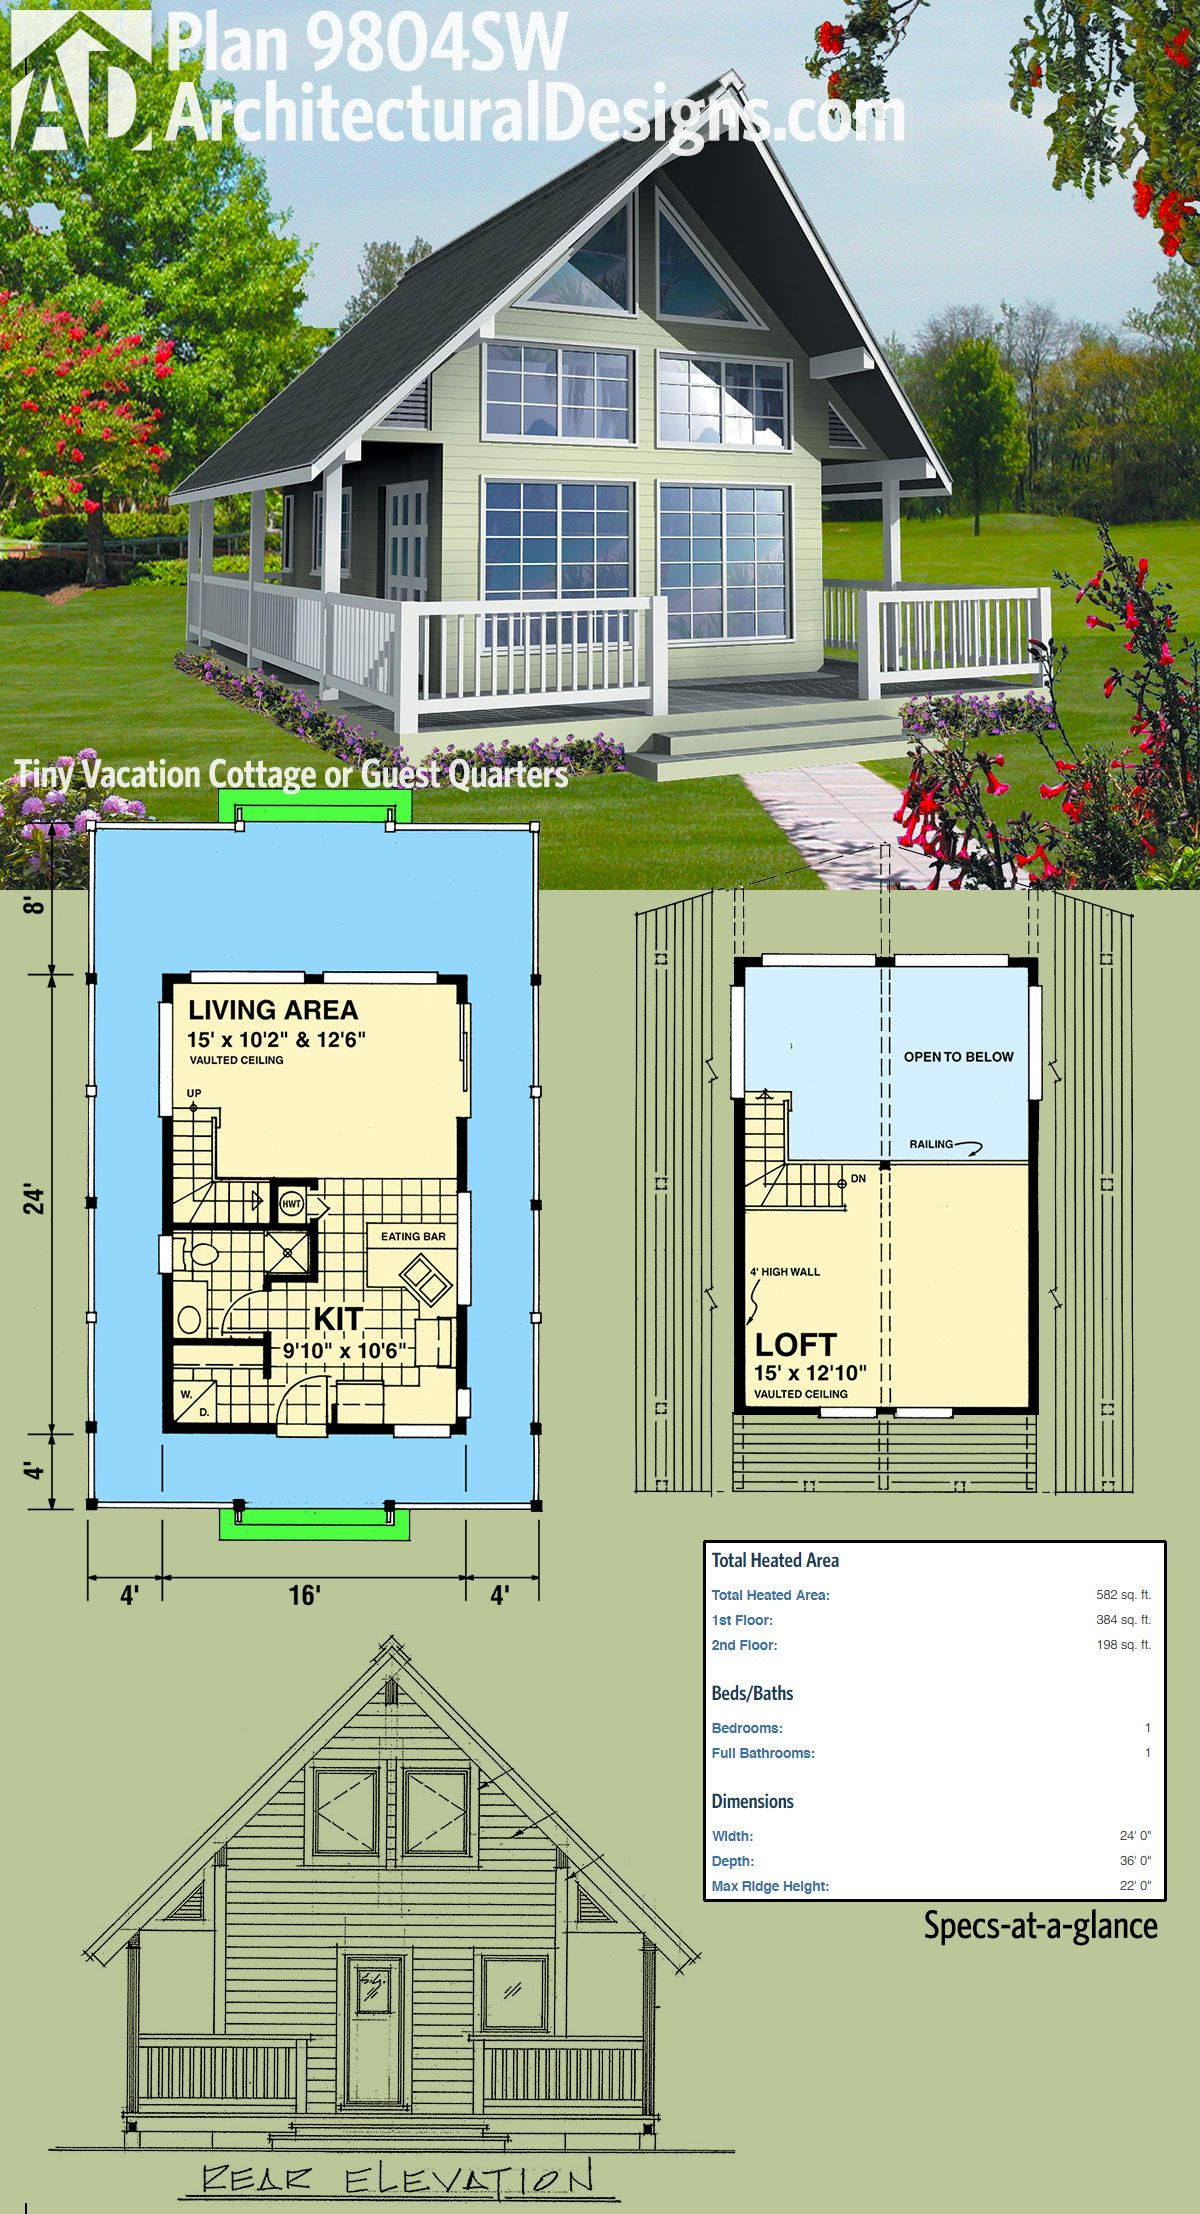 Plan 9804sw Vacation Cottage Or Guest Quarters A Frame House Plans Cottage House Plans Cabin House Plans